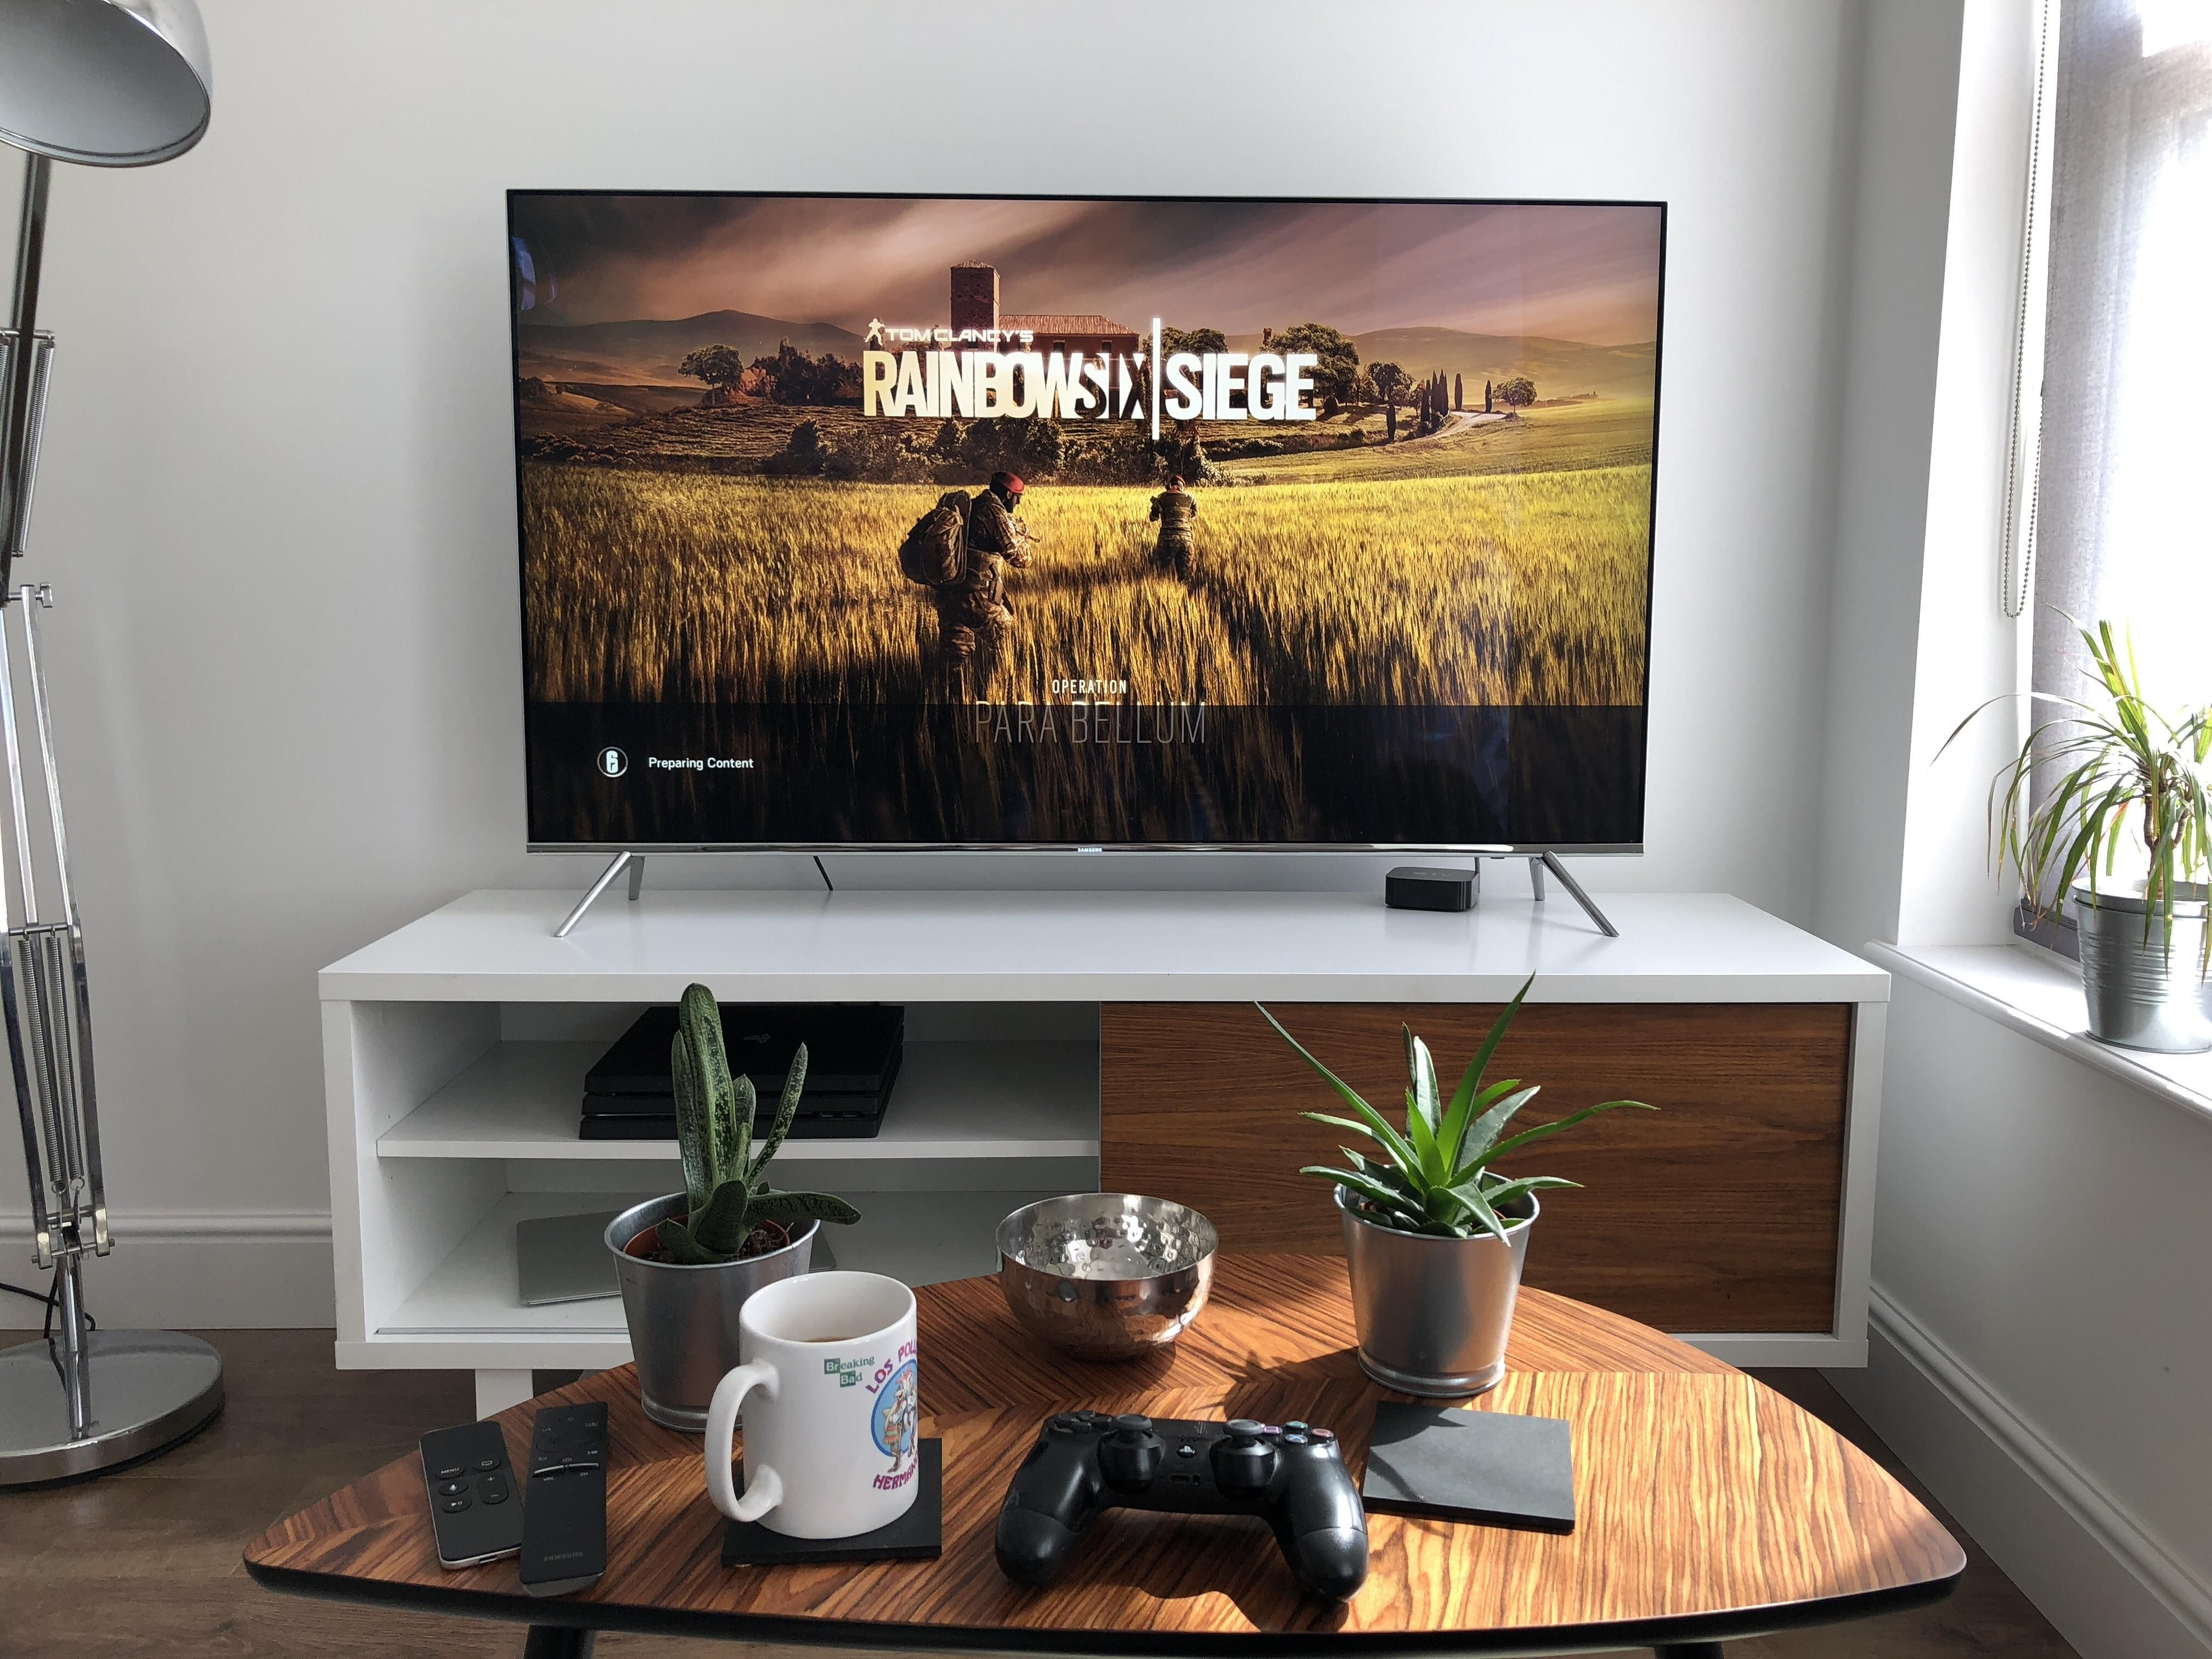 Its not much but I love my little London flat Living